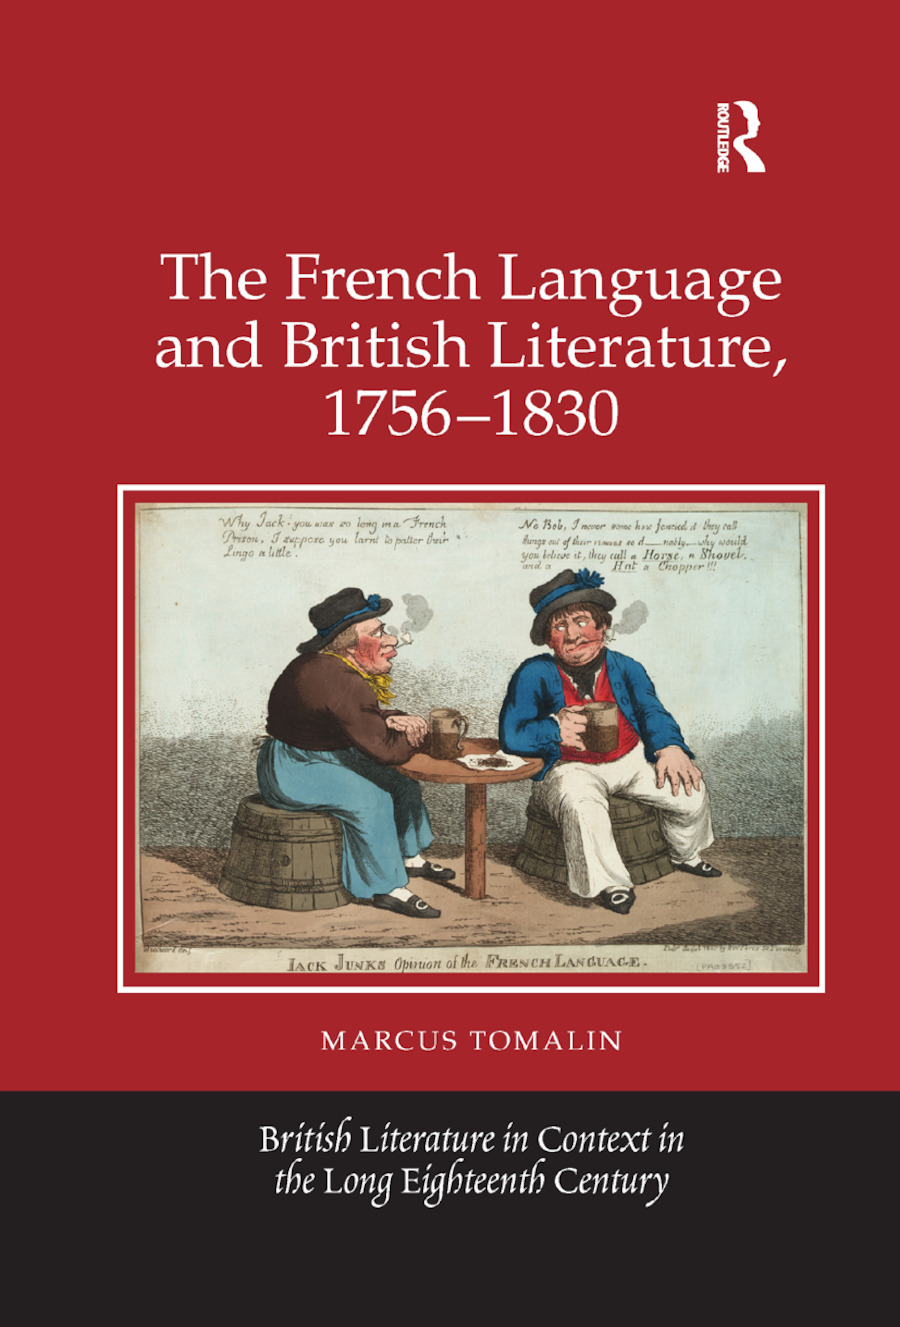 The French Language and British Literature, 1756-1830 book cover